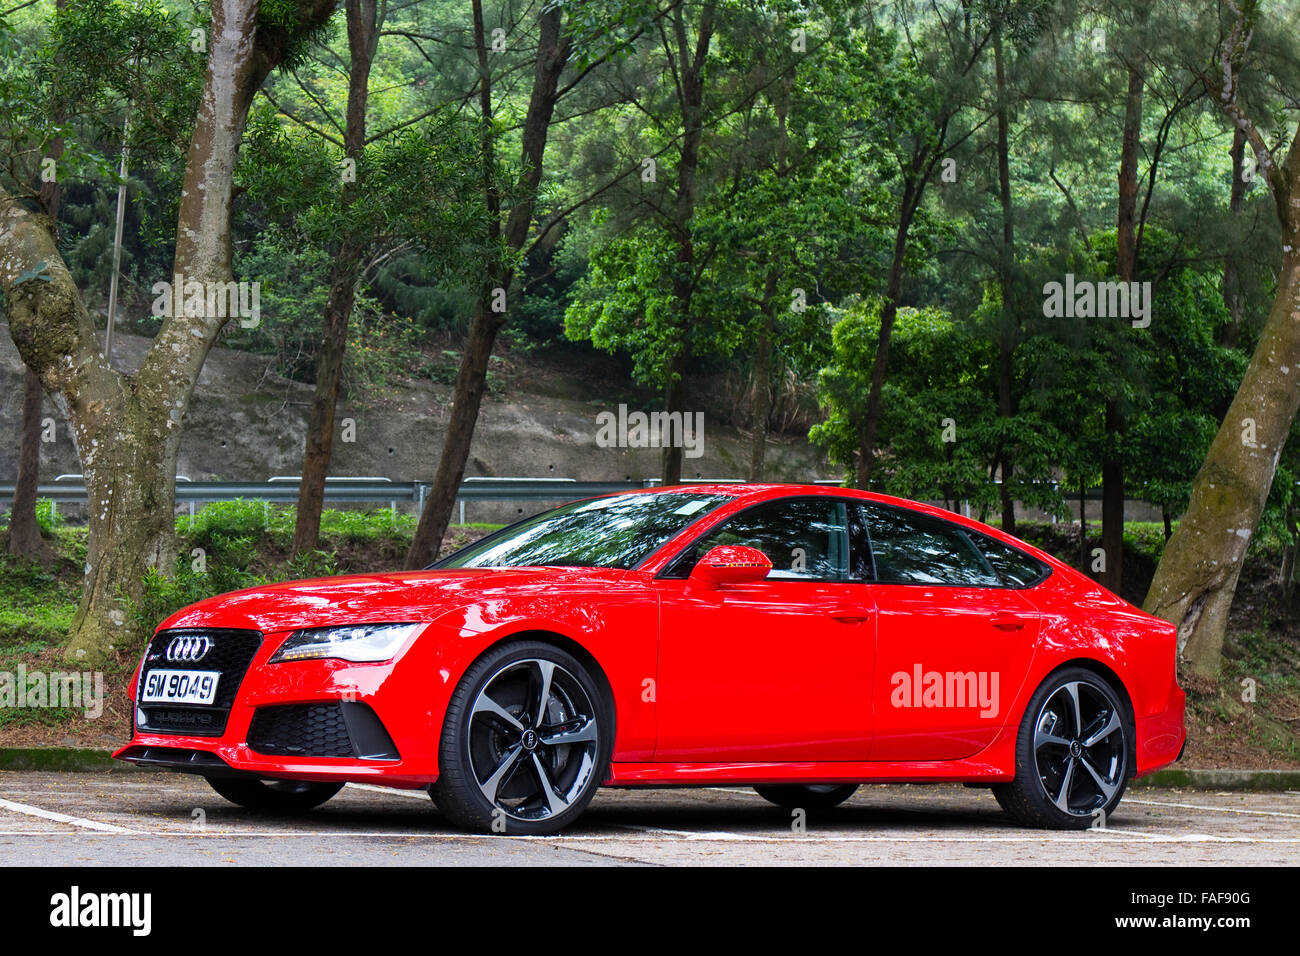 Audi Rs7 Stock Photos Images Alamy 2017 Sportback With A Red Colour Hong Kong China April 30 2014 Seden Test Drive